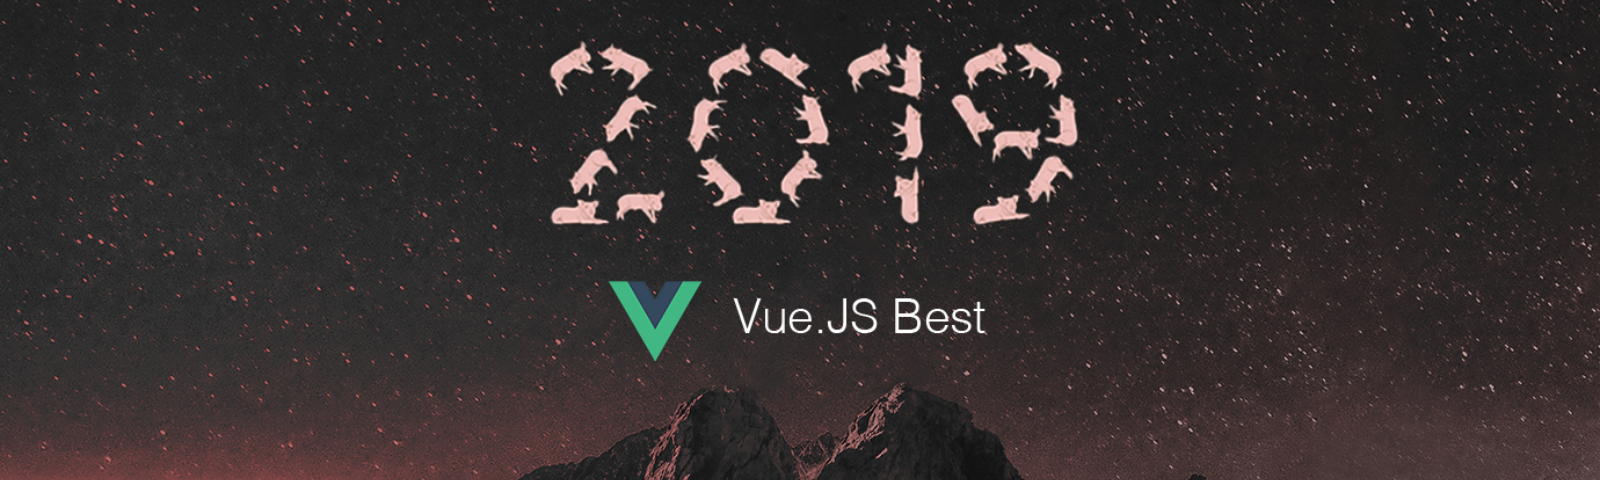 Learn Vue js from Top 50 Articles for the Past Year (v 2019)